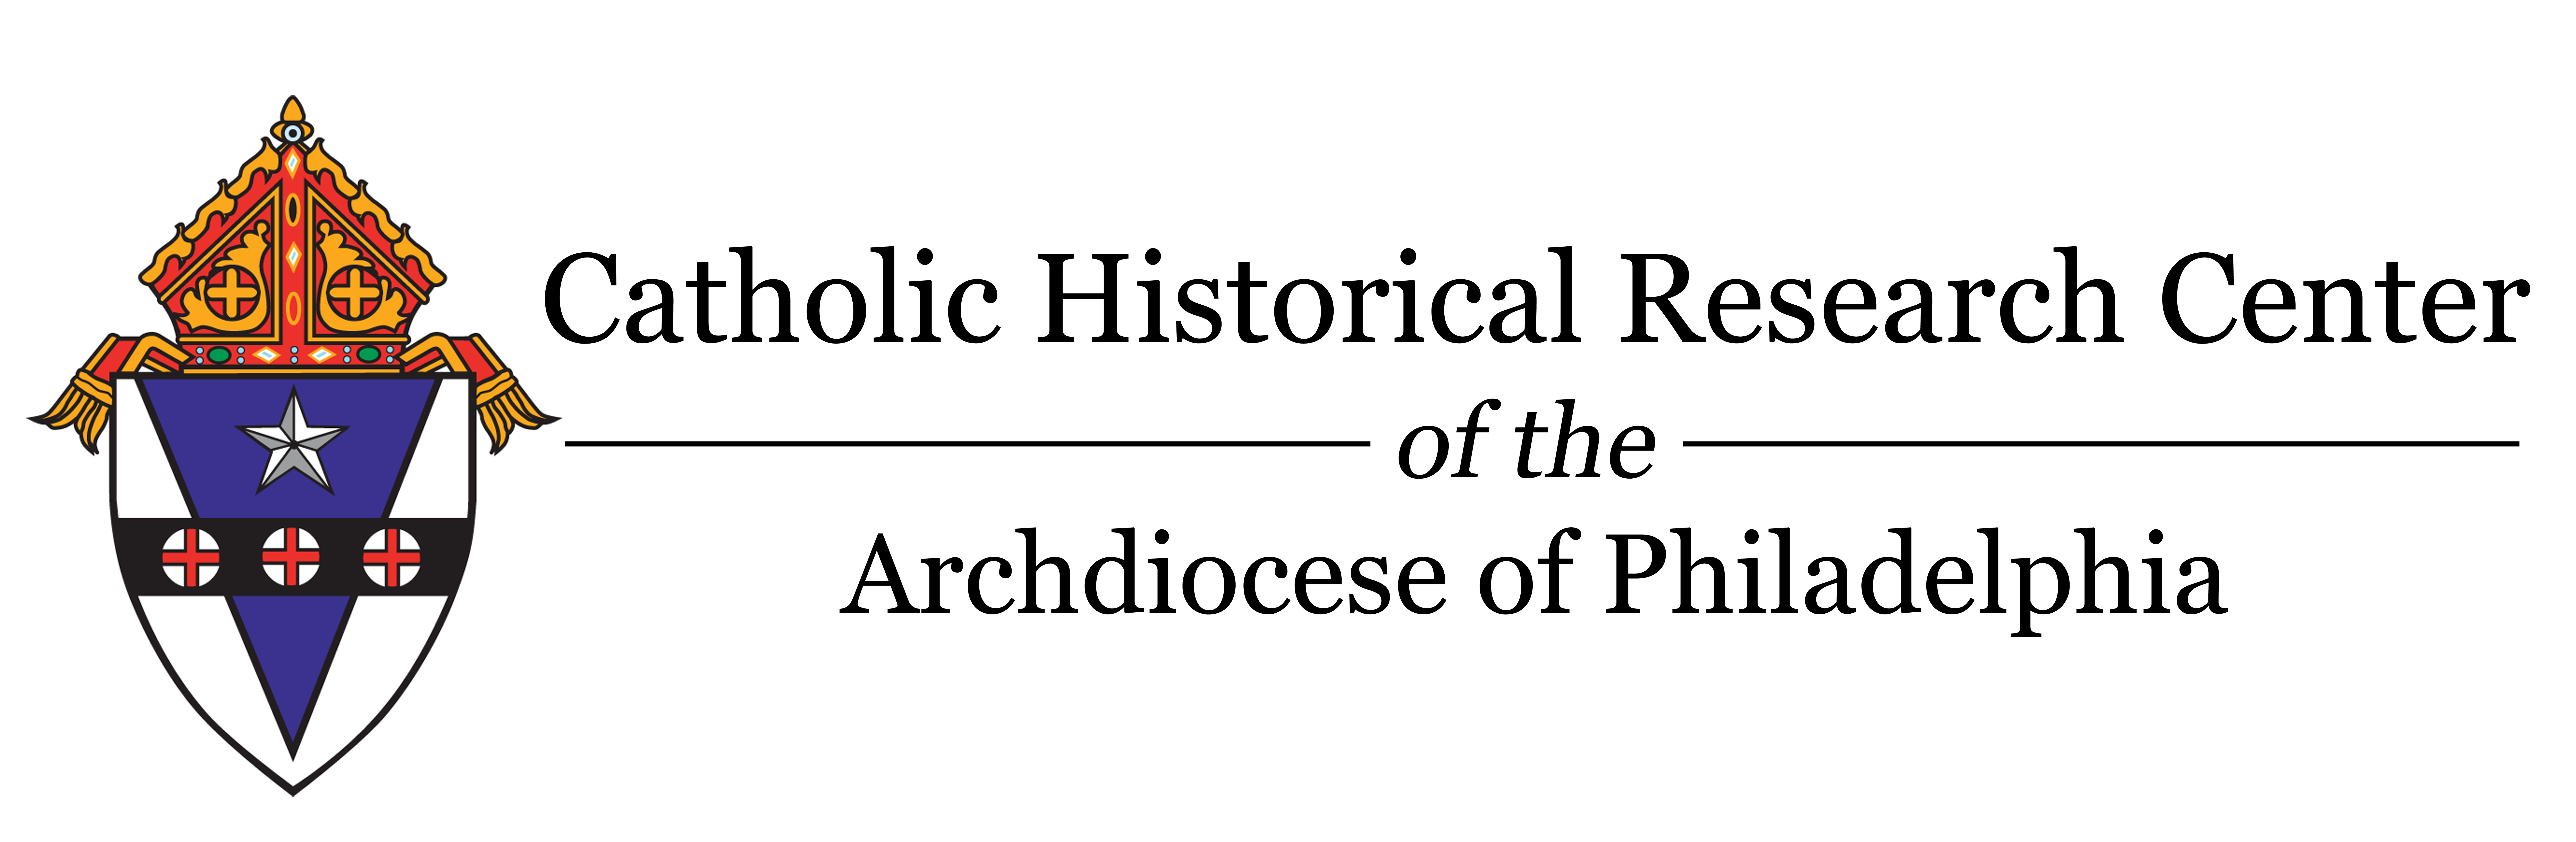 Catholic Historical Research Center of the Archdiocese of Philadelphia